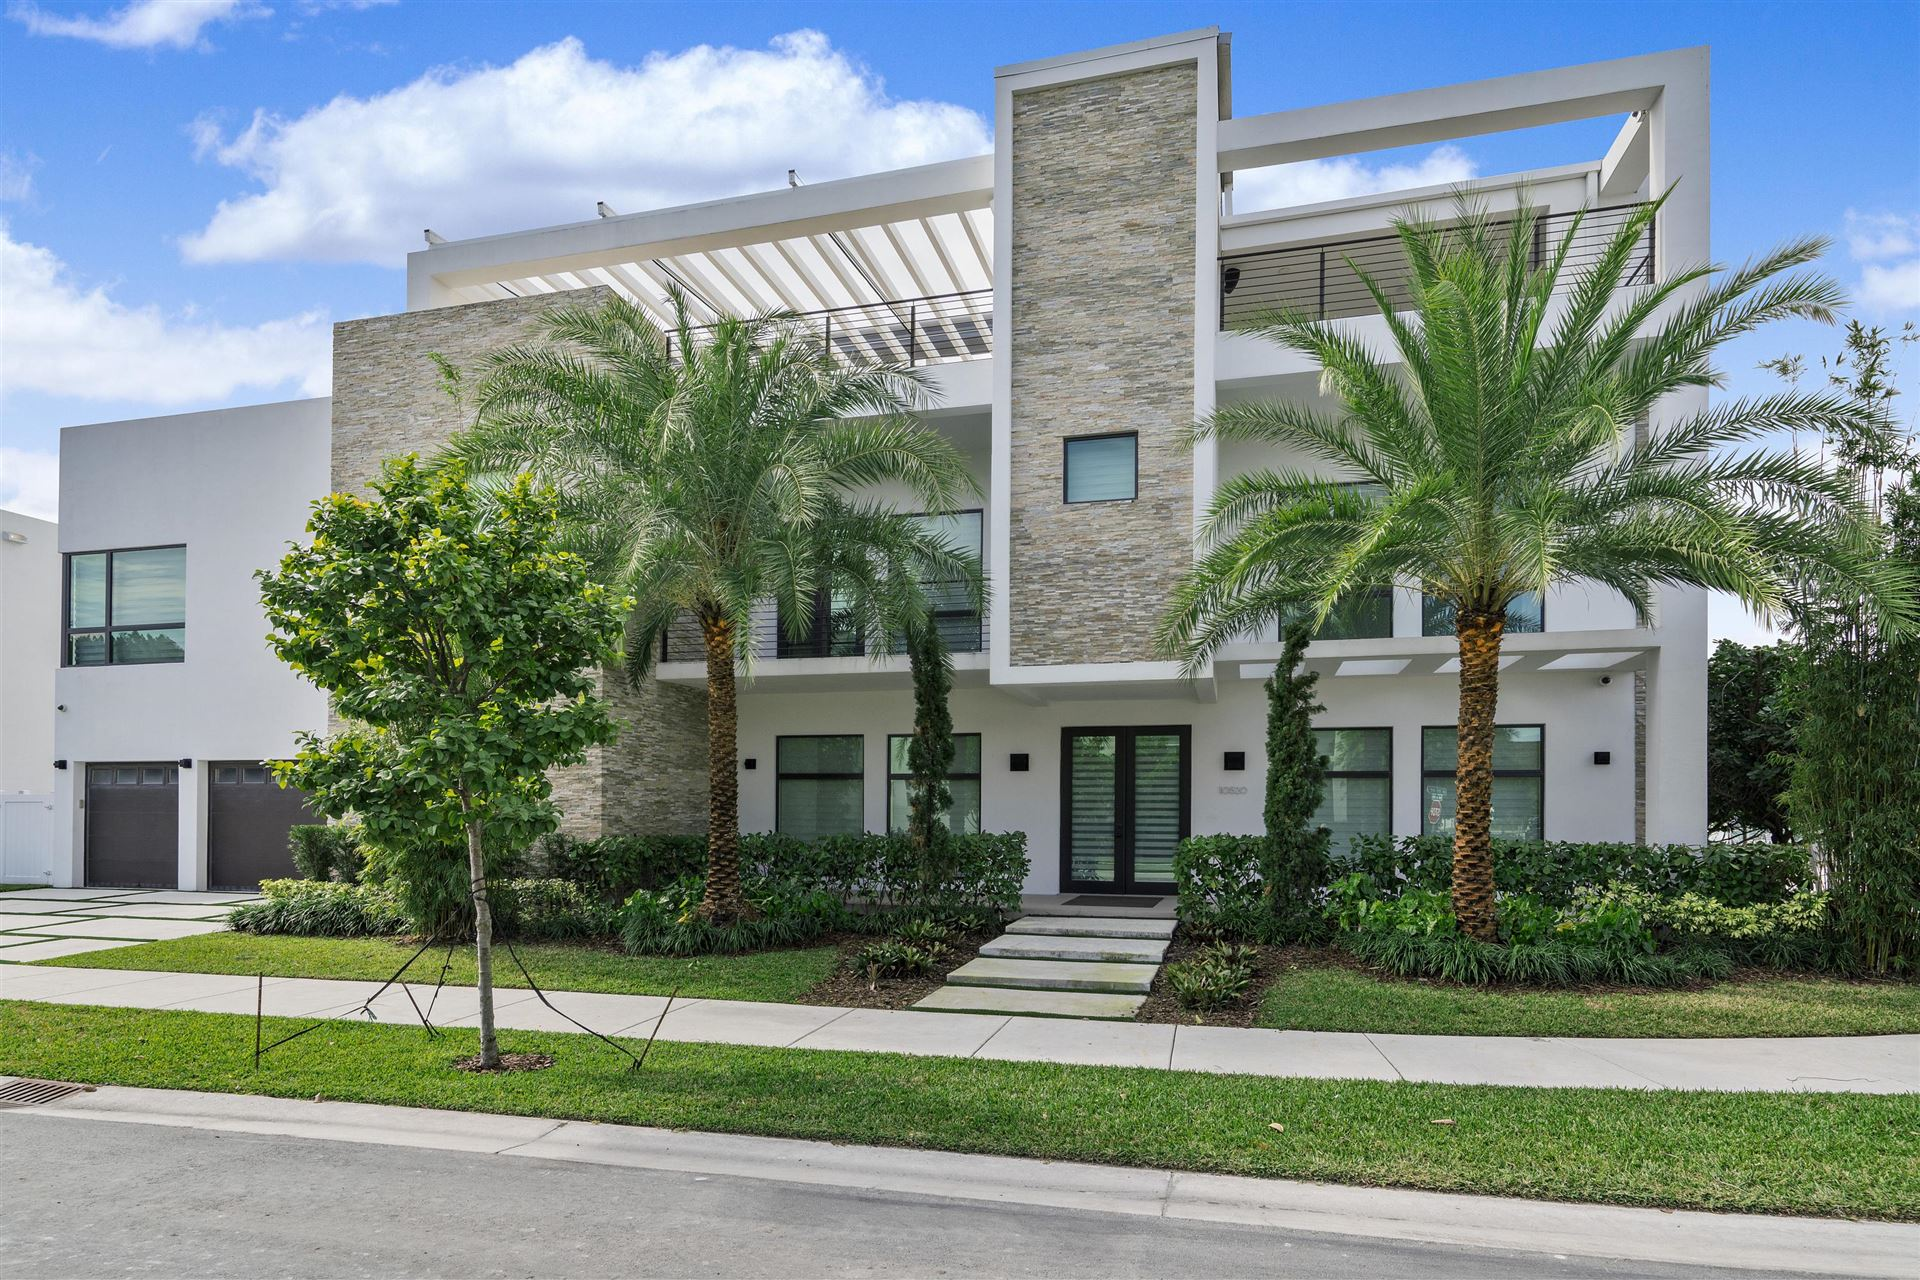 Photo of 10520 NW 68th Terrace, Doral, FL 33178 (MLS # RX-10686691)